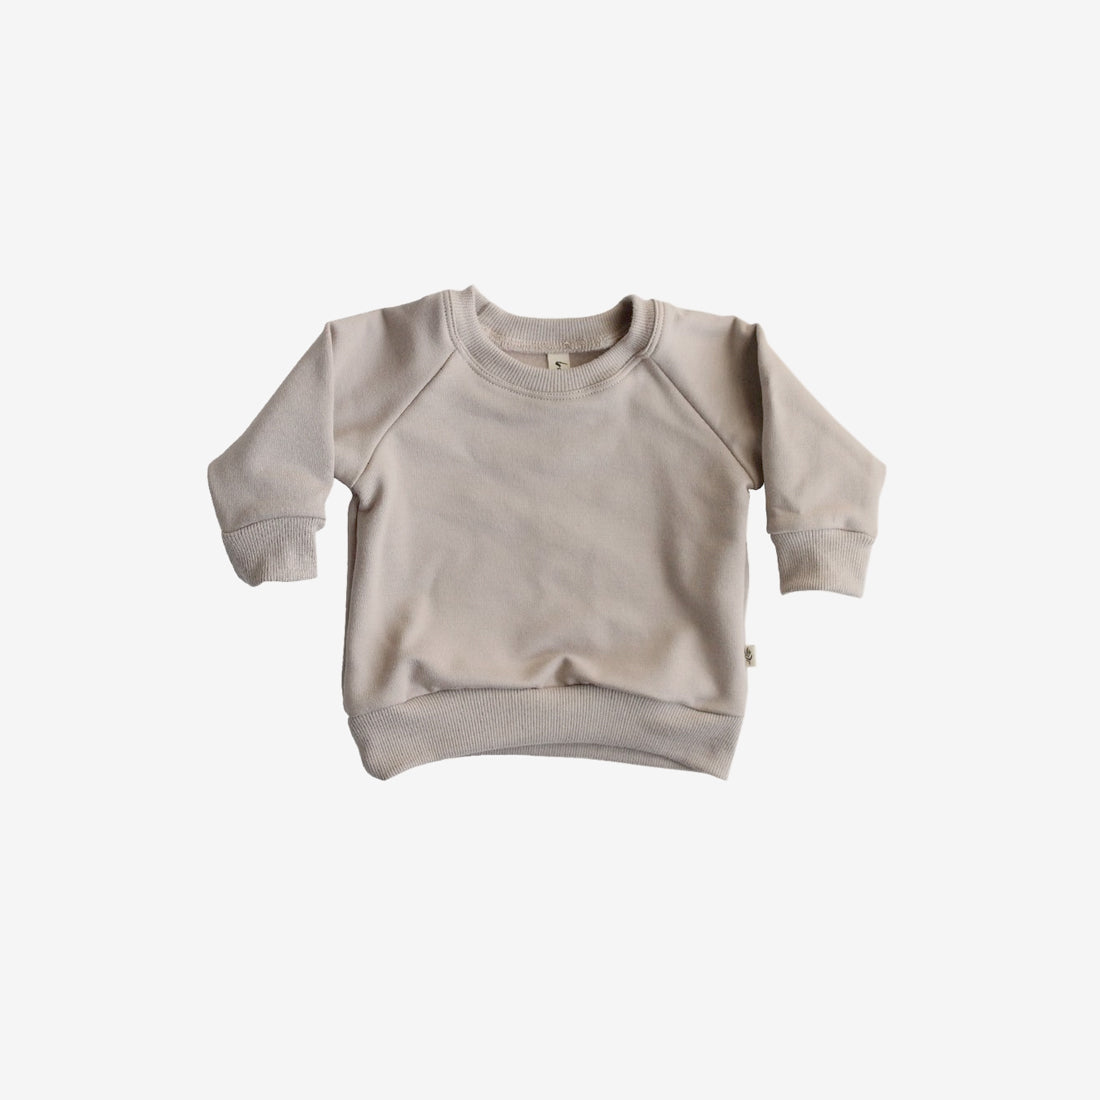 Bamboo Fleece Sweatshirt - Fawn